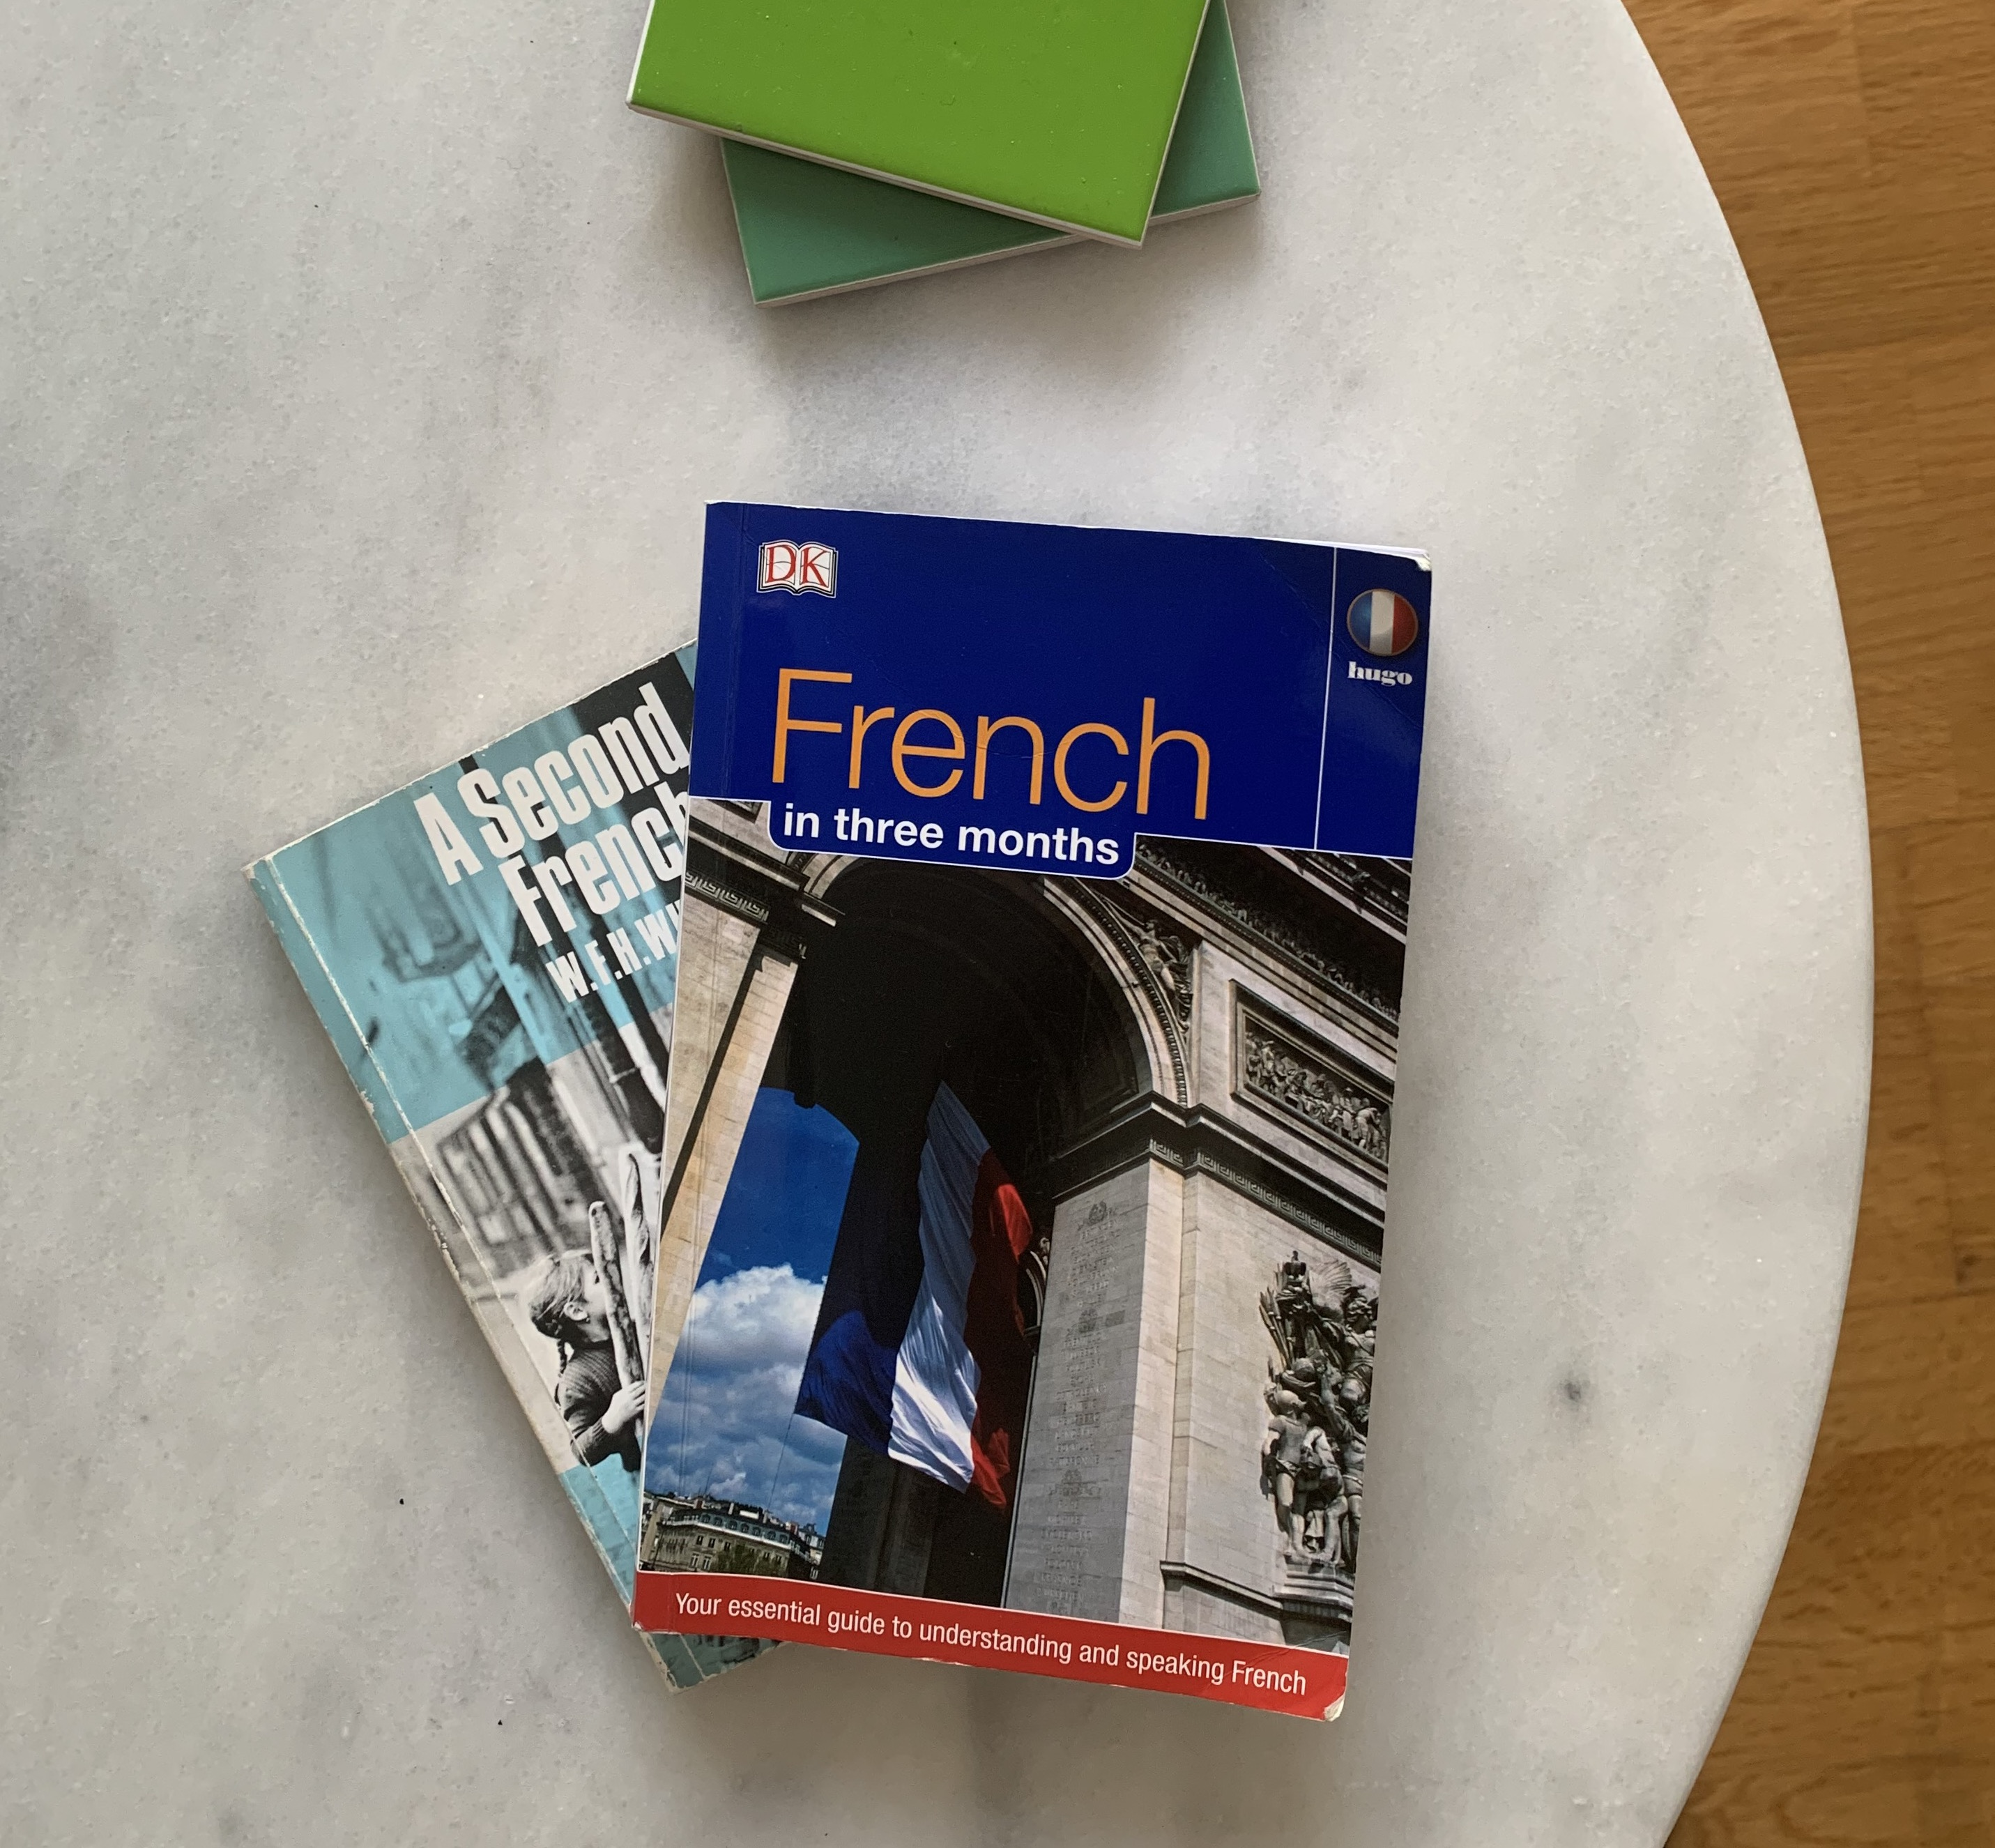 learn, french, language, skills LocalBini, alternative, holiday, experience, local, authentic, Europe, Travel, Travel tips, travel blog, vacation, traditional, food, foodie, history, things to do, virtual tour, isolation, home, hobby, knit, course, online class, cooking, unique, isolation, quarantine, friends, fitness, routine, class, organisation, tidy, spring clean, marathon, reading, books, novels, stories, harry potter, lord of the rings